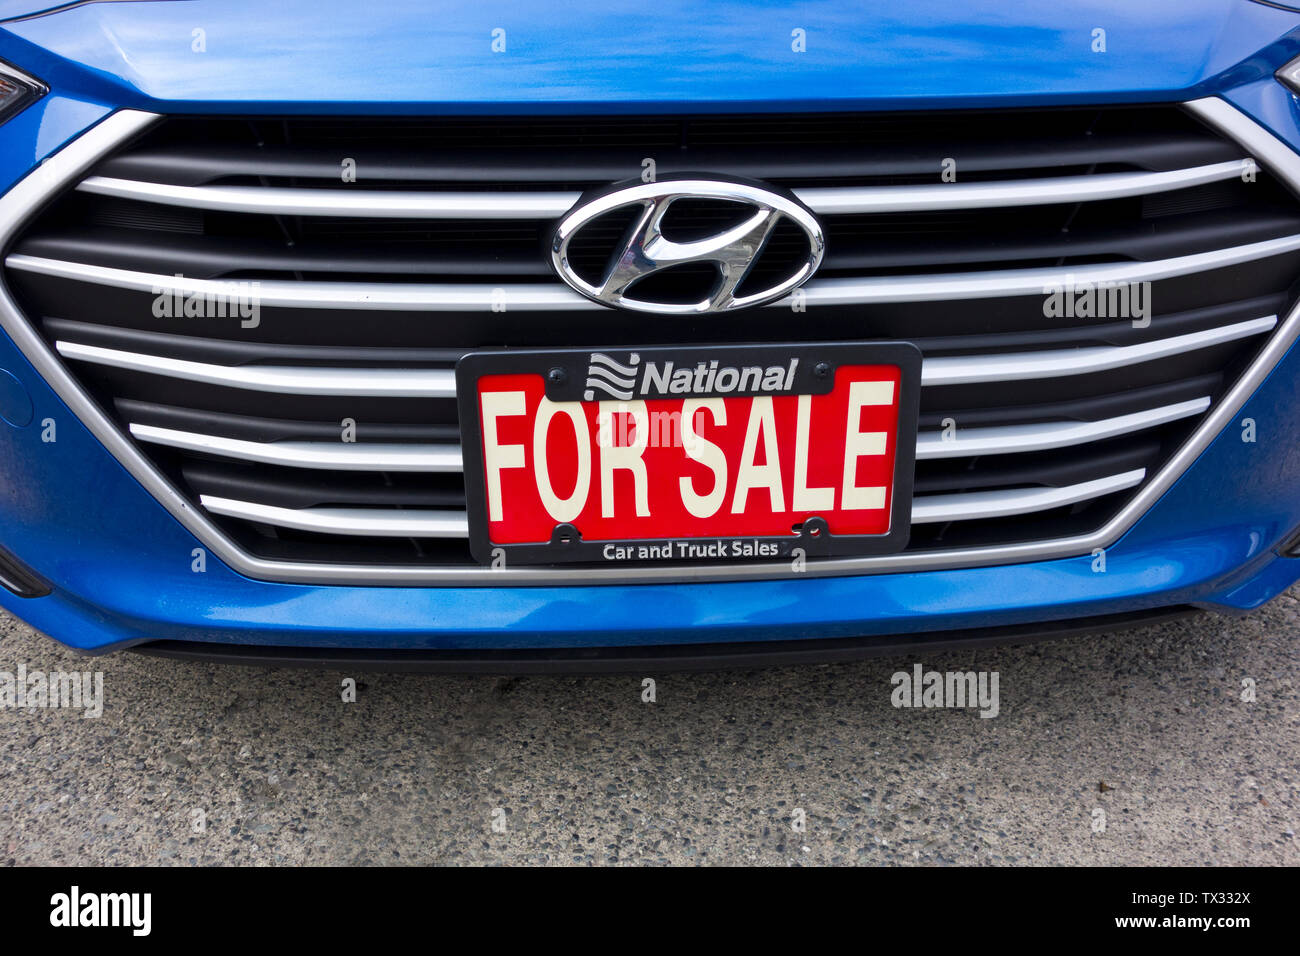 2018 Hyundai Elantra GL used car for sale.  Closeup of car grill with For Sale sign at a used car lot. - Stock Image